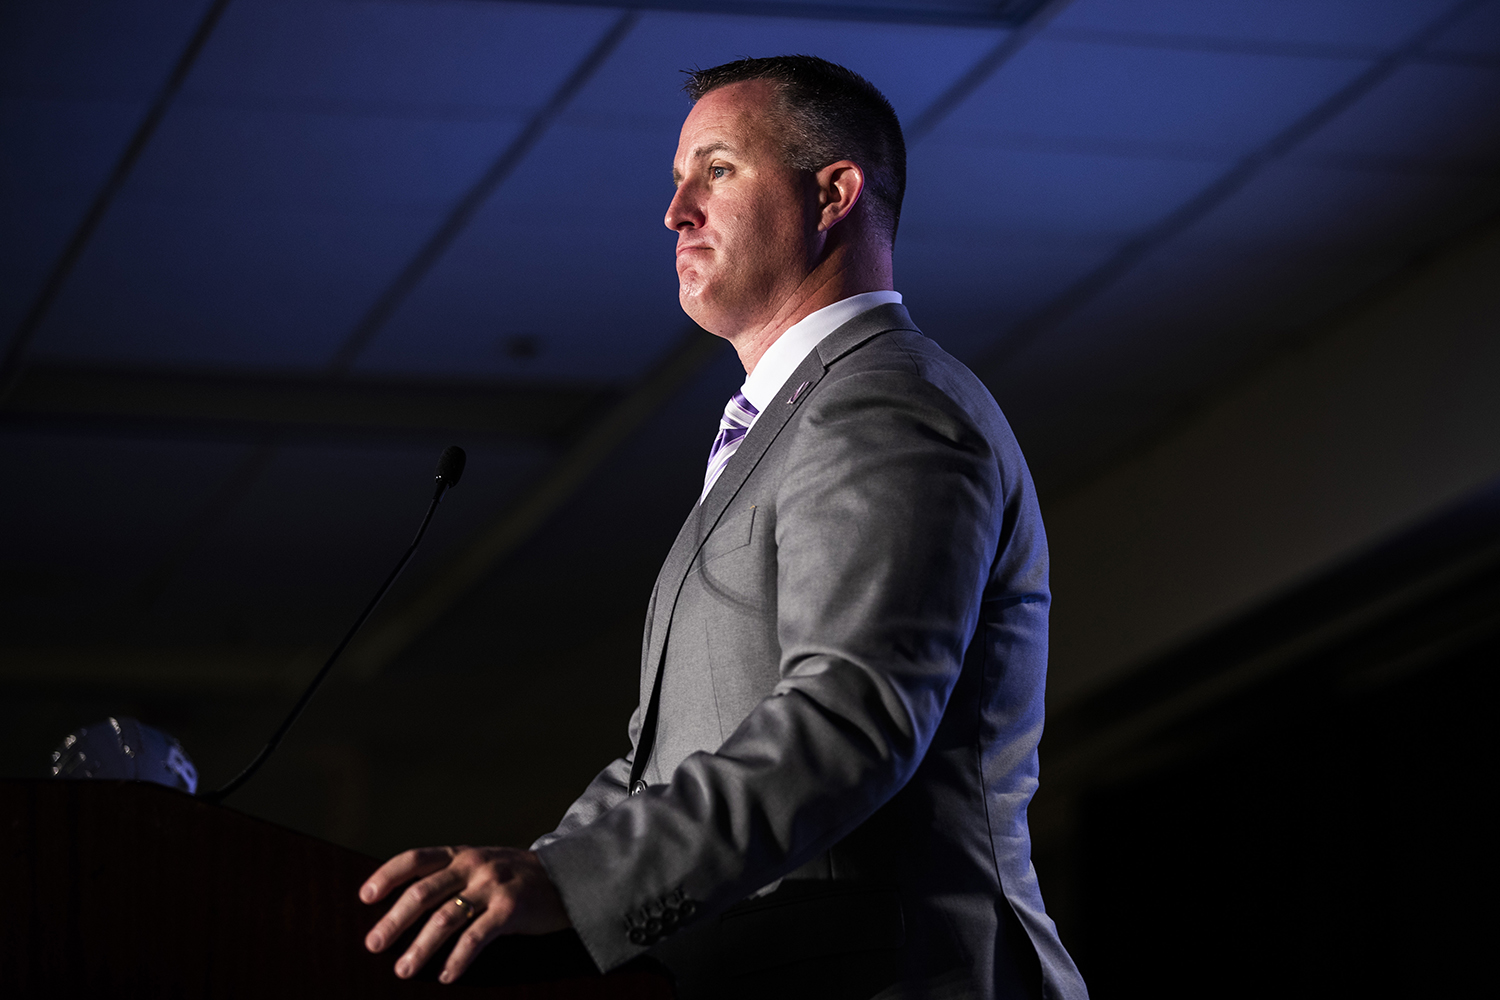 Northwestern head coach Pat Fitzgerald speaks during the second day of Big Ten Football Media Days in Chicago, Ill., on Friday, July 19, 2019.